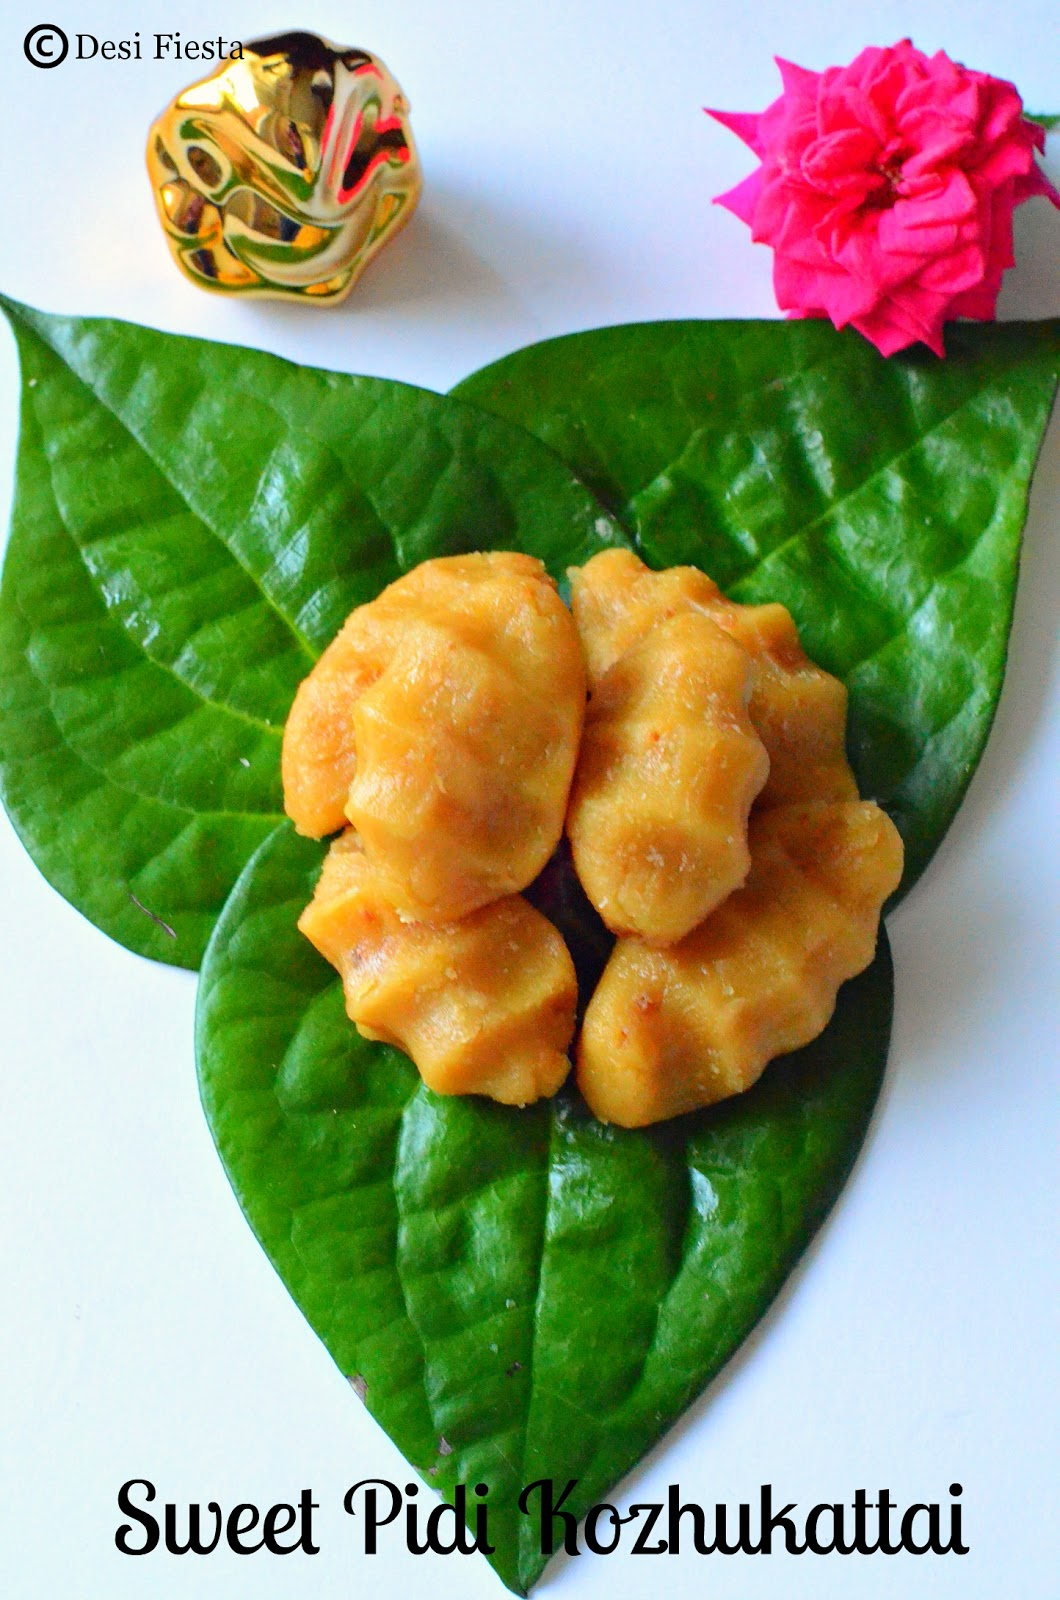 Sweet pidi kozhukattai Recipe ~Diwali recipes